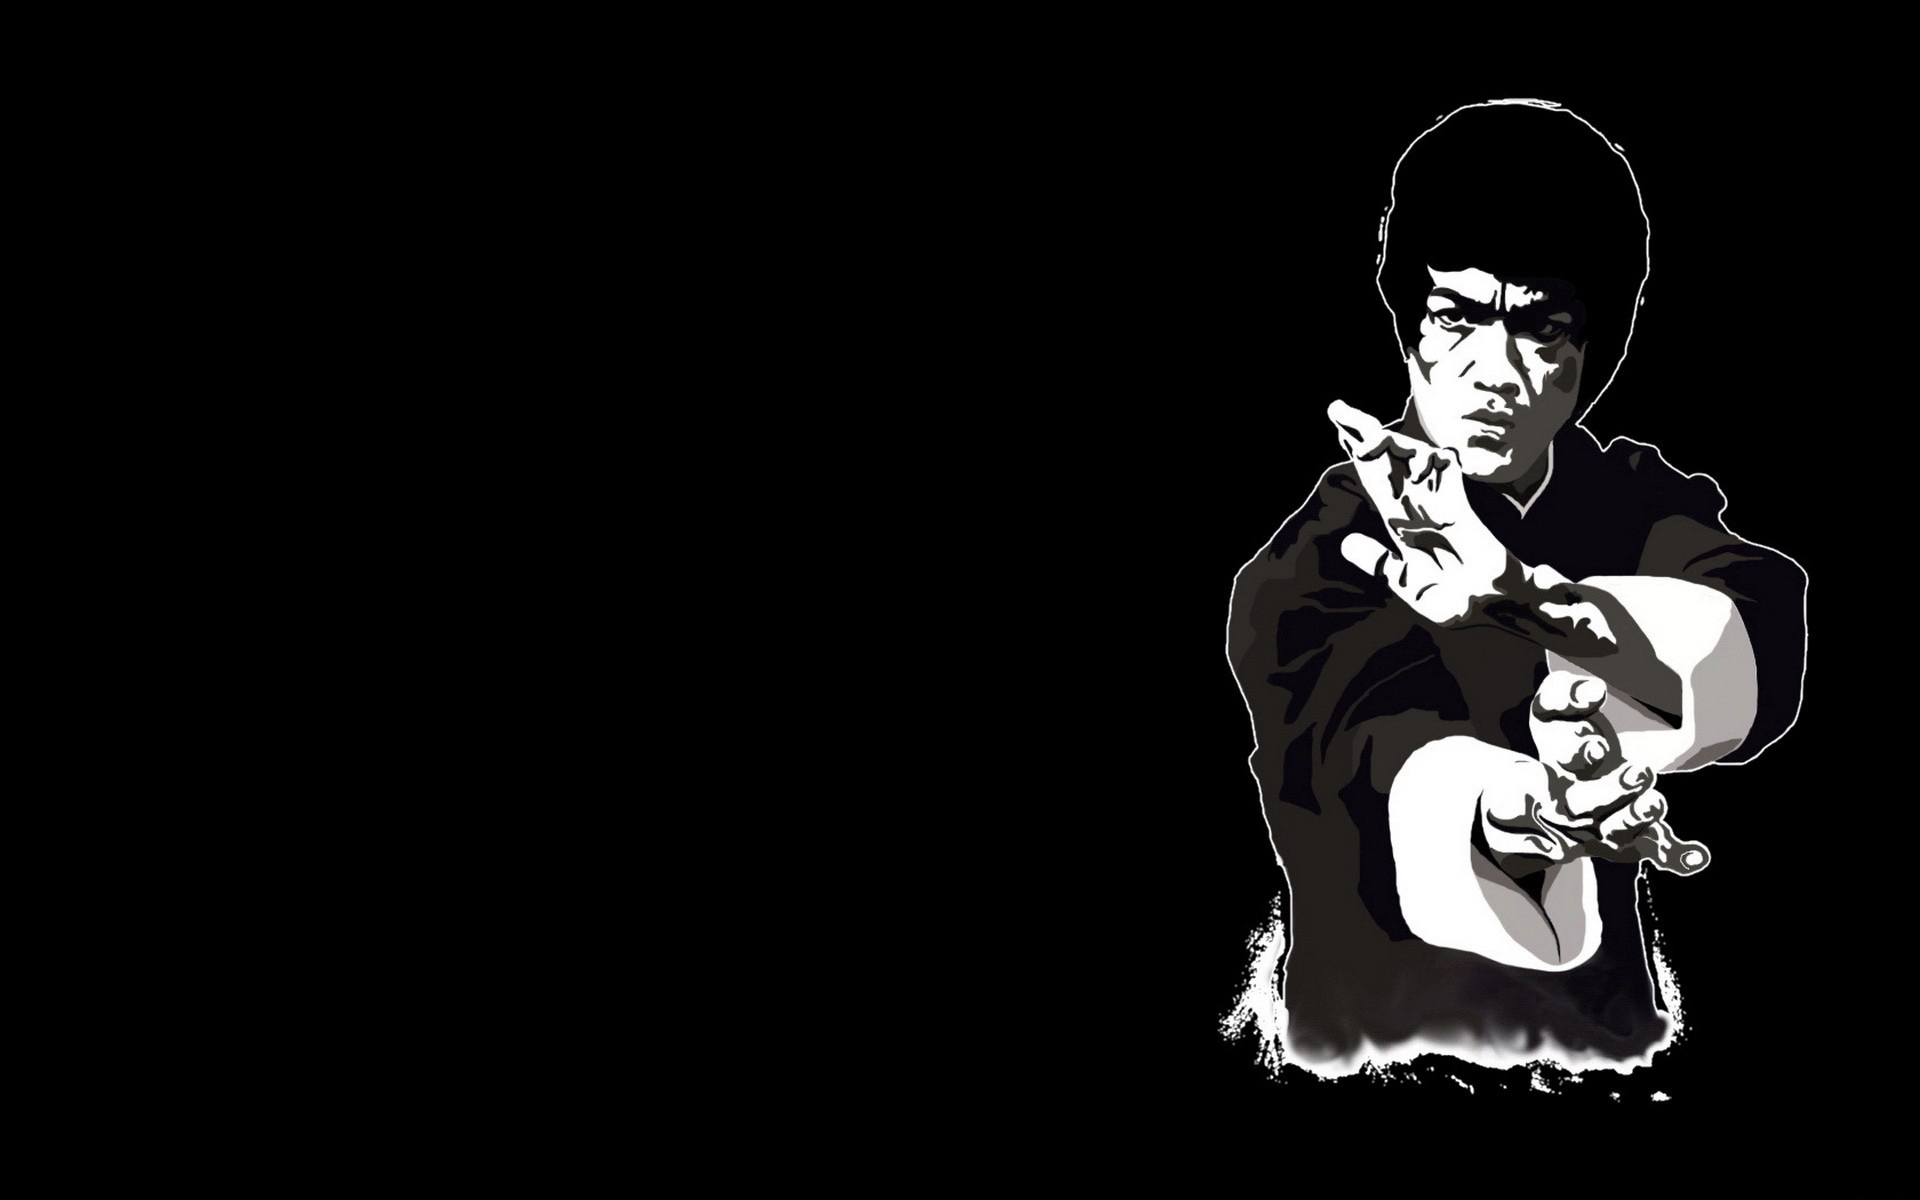 Download Bruce Lee Wallpapers JNG71 download now at 1920x1200